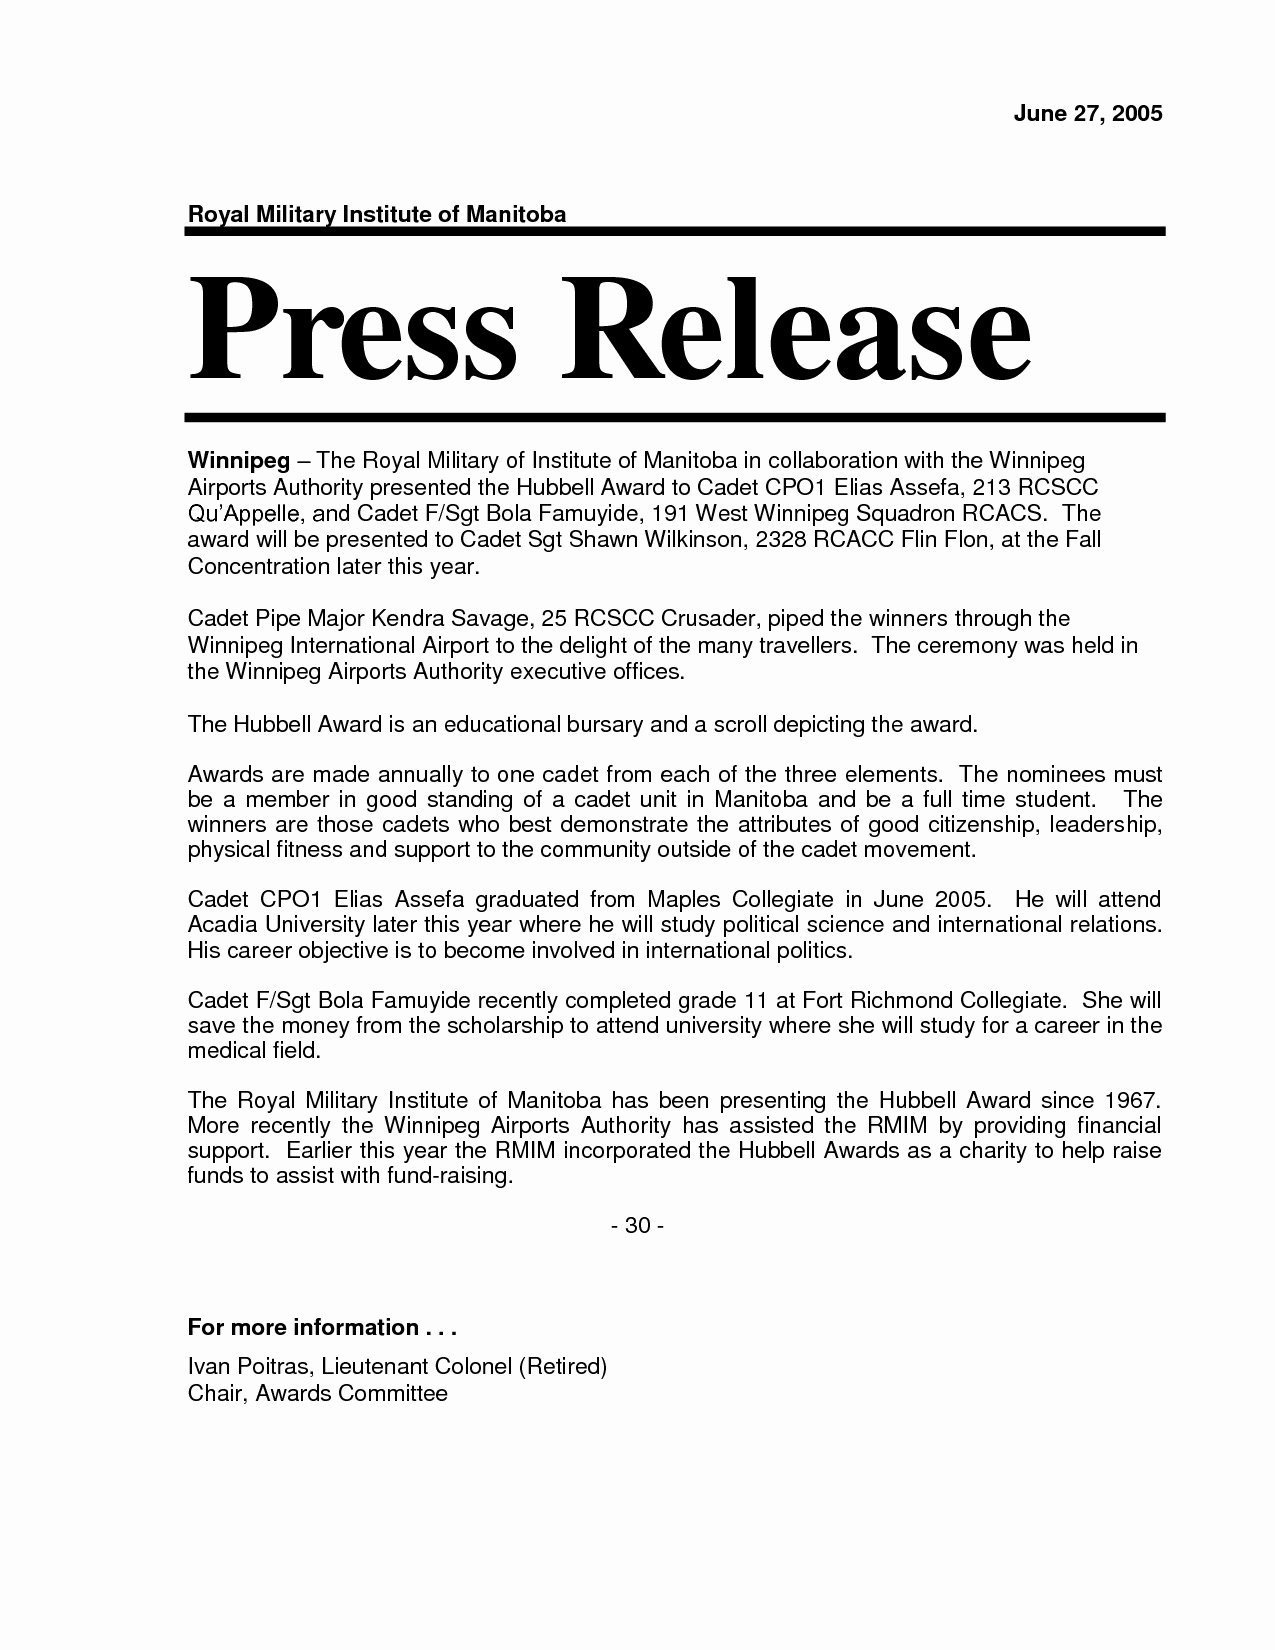 Sample Press Release Template Elegant 10 Best Of New Pany Press Release New Business